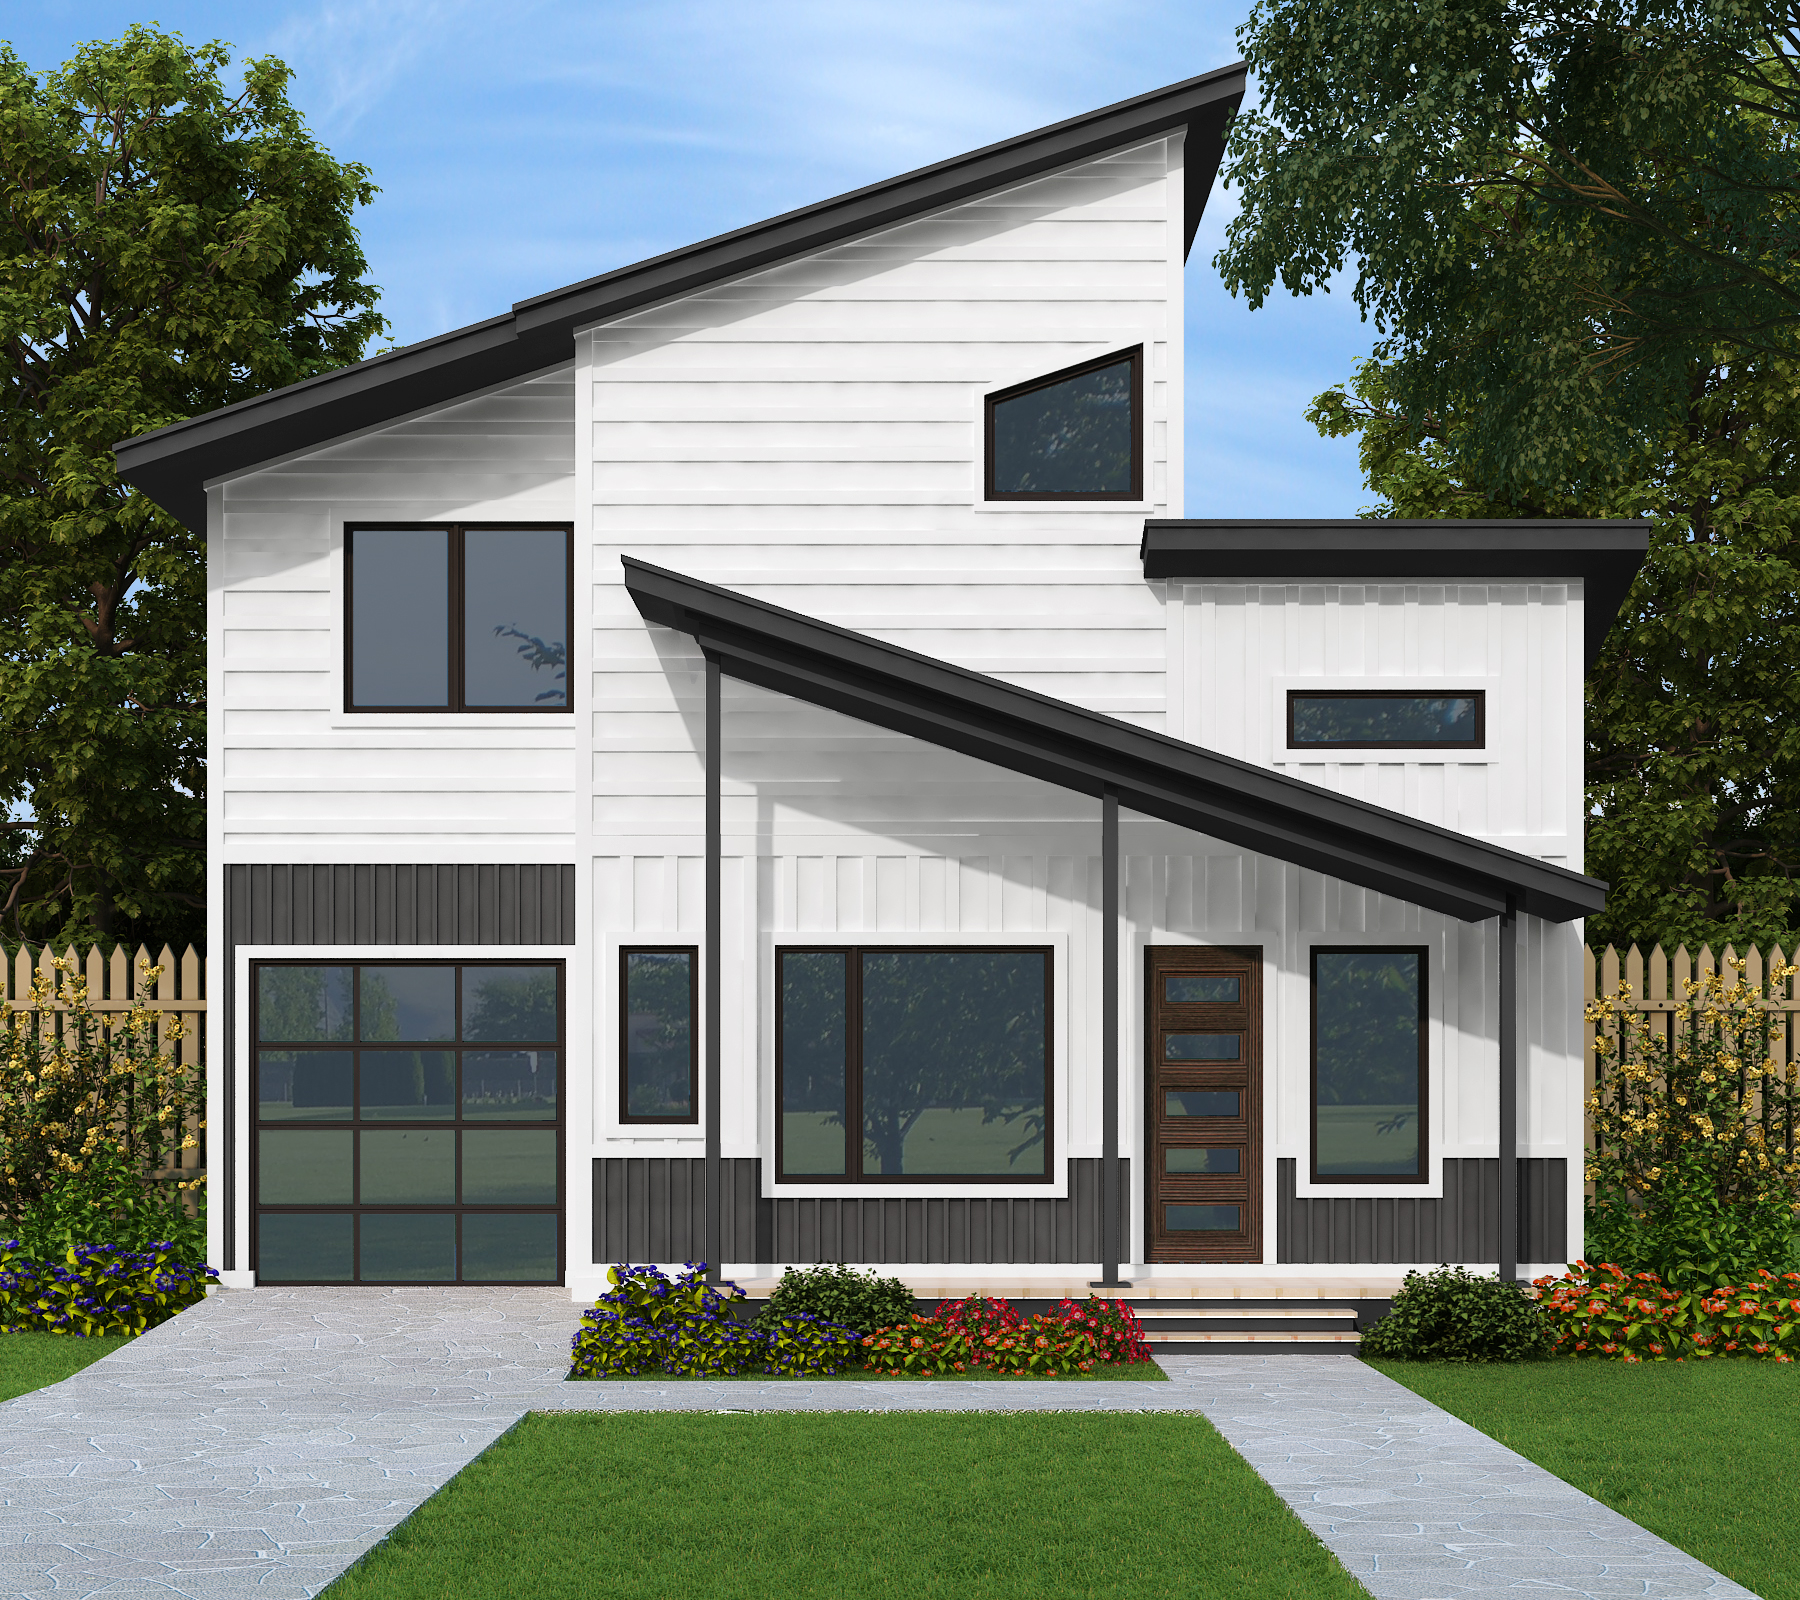 939 52nd Building 2 - $429,000 - 2 Bed 2.5 Bath 1100SqFt